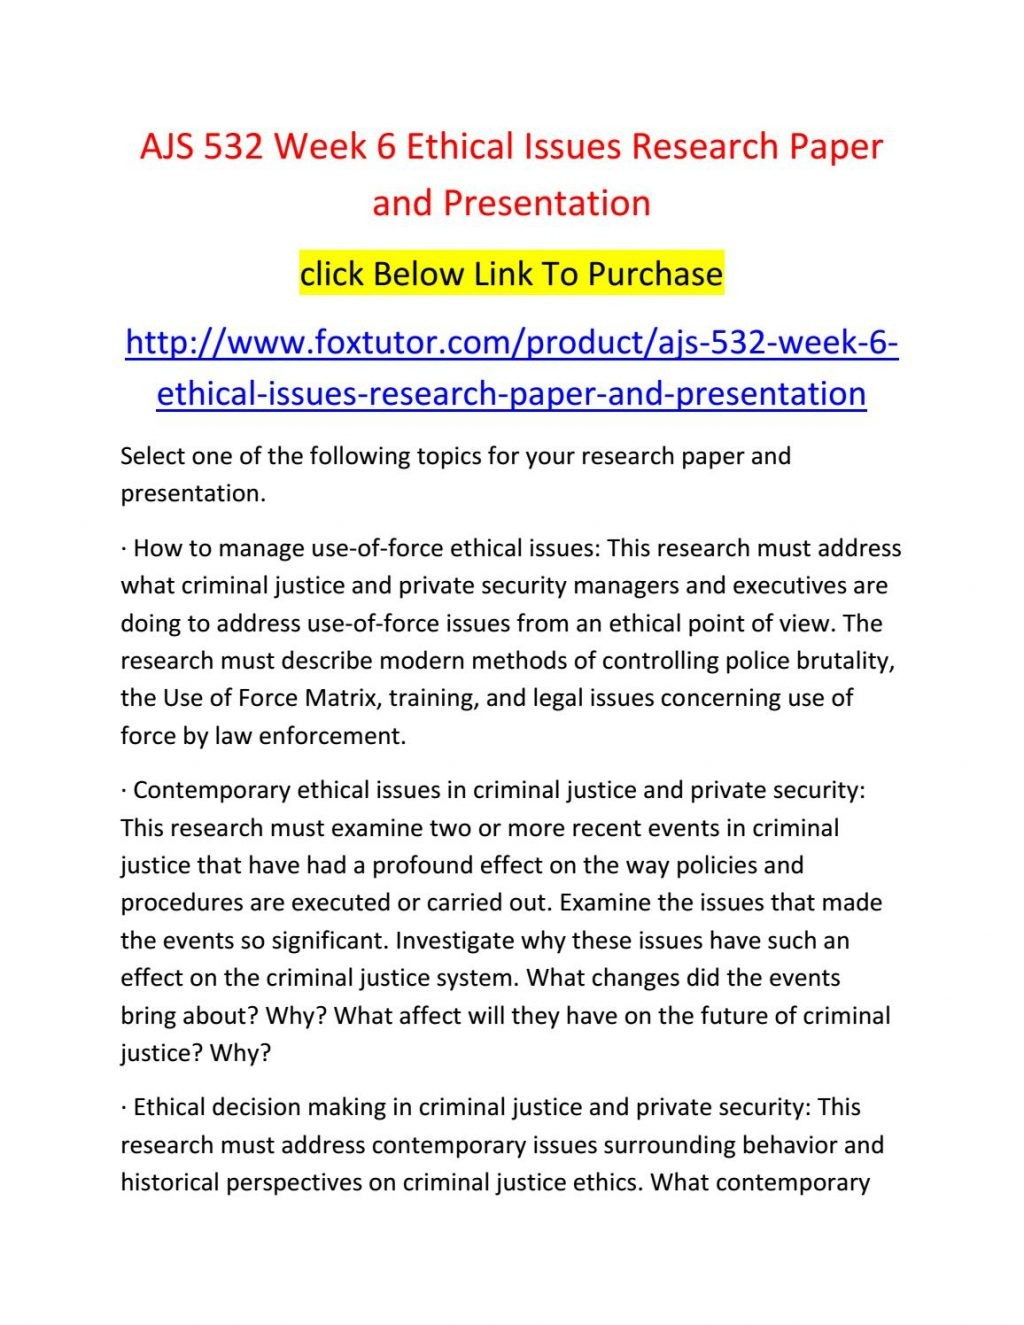 020 Criminal Justice Research Paper Topics 20law Enforcement Ideas Samples Ajs Week20 Fearsome 100 Large